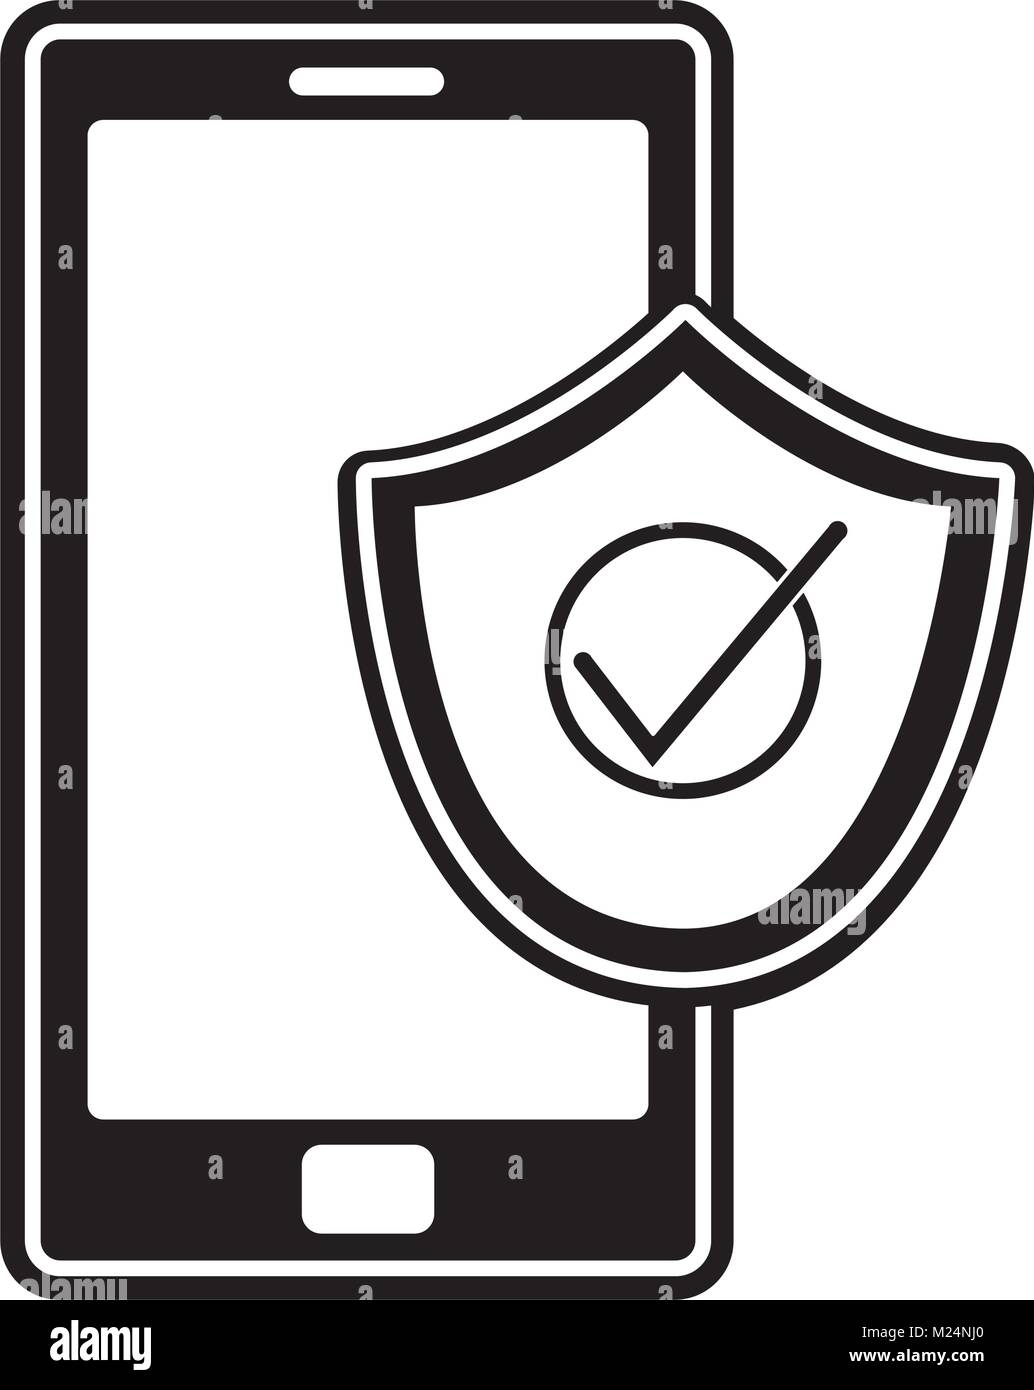 silhouete smartphone technology with shield security icon - Stock Image